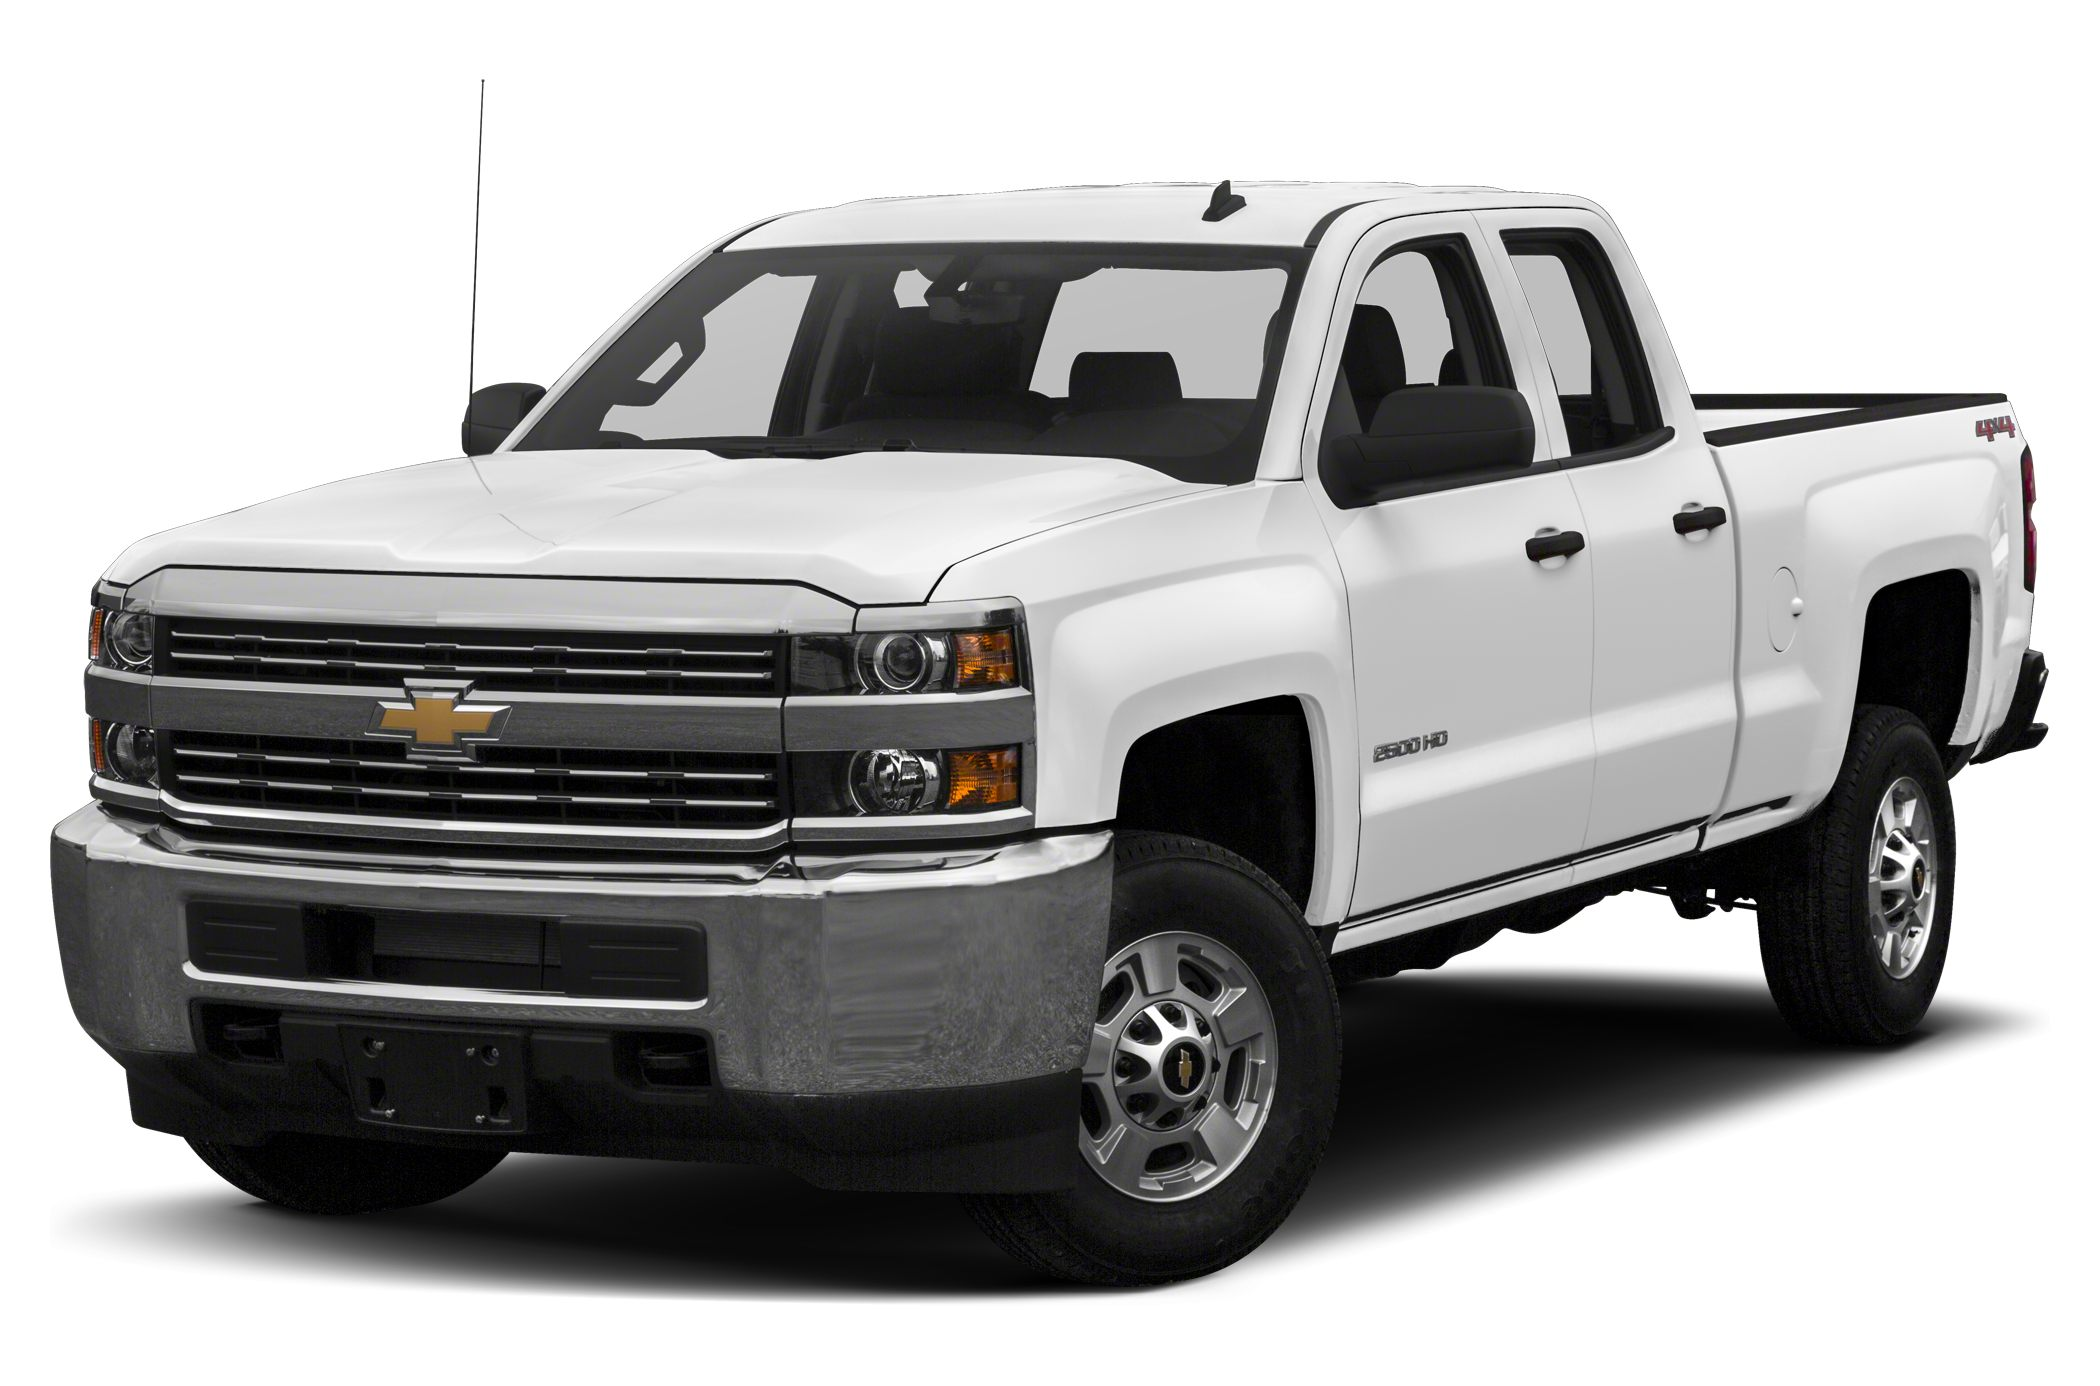 2015 Chevrolet Silverado 3500 LT Crew Cab Pickup for sale in Comanche for $55,150 with 0 miles